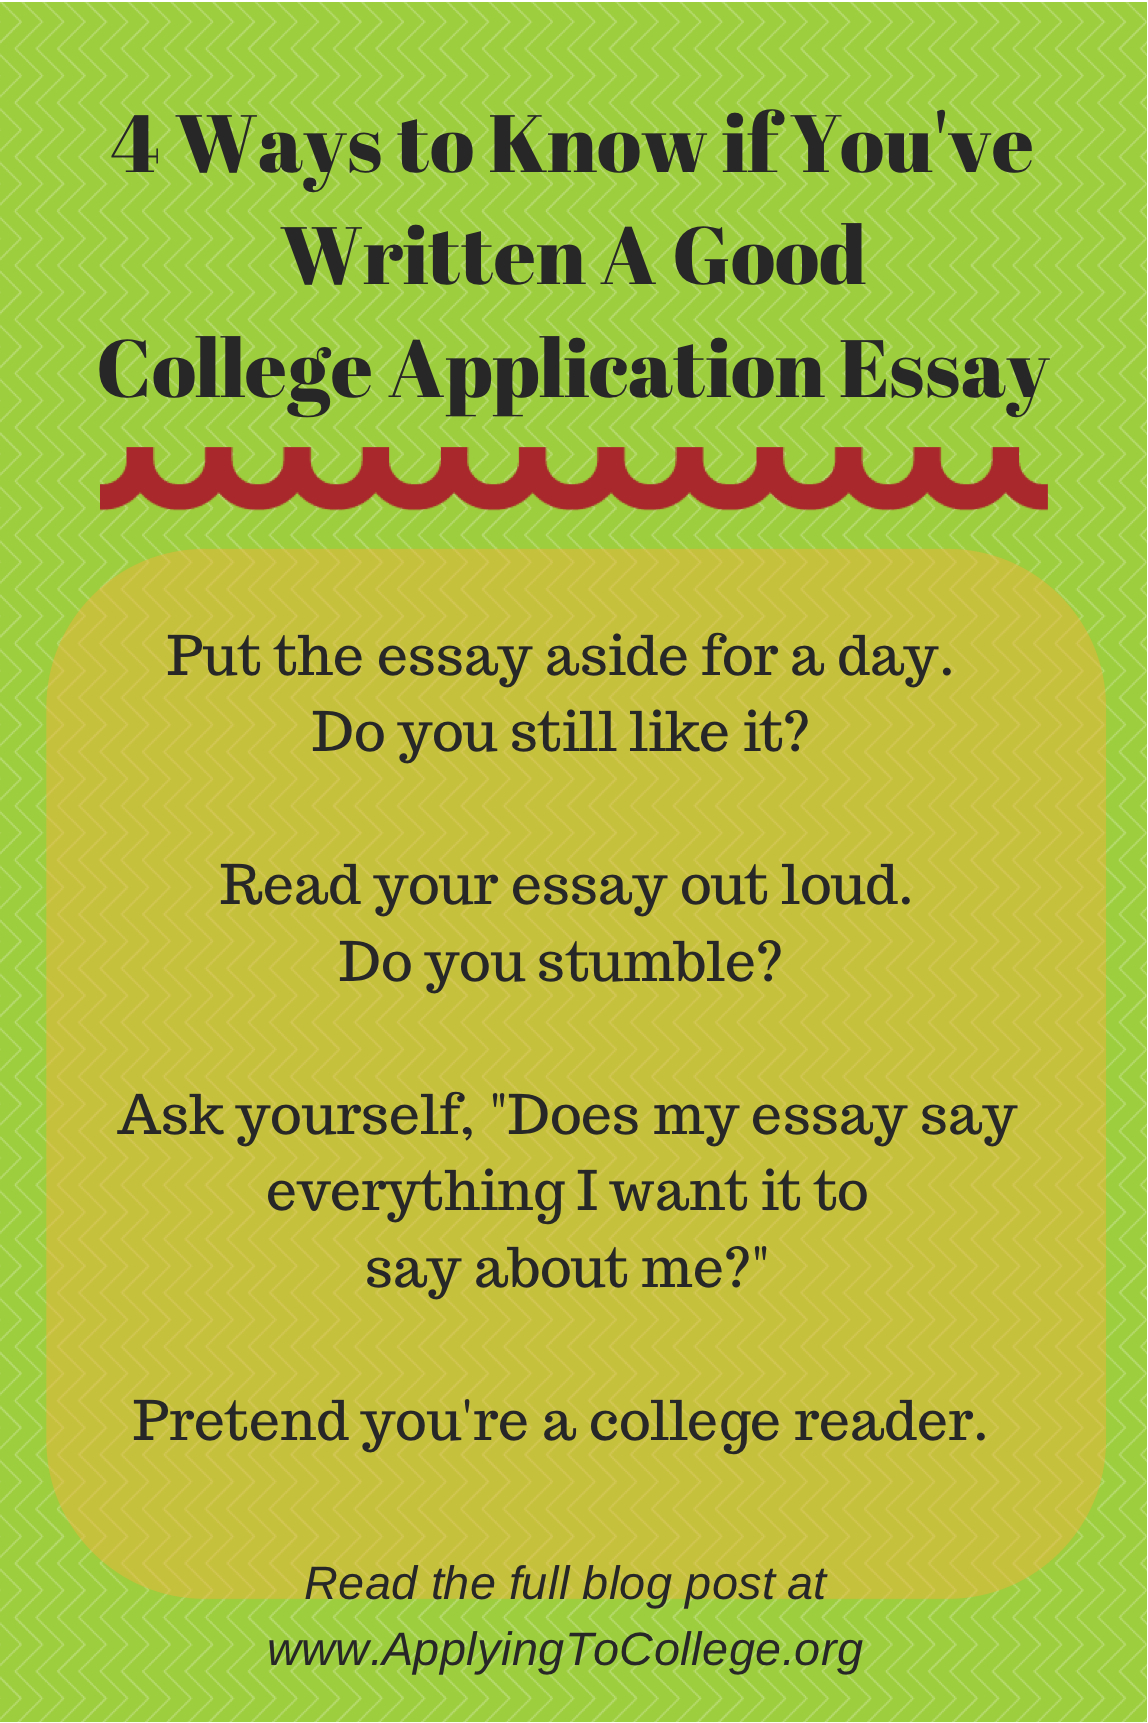 Writing the college application essay ever